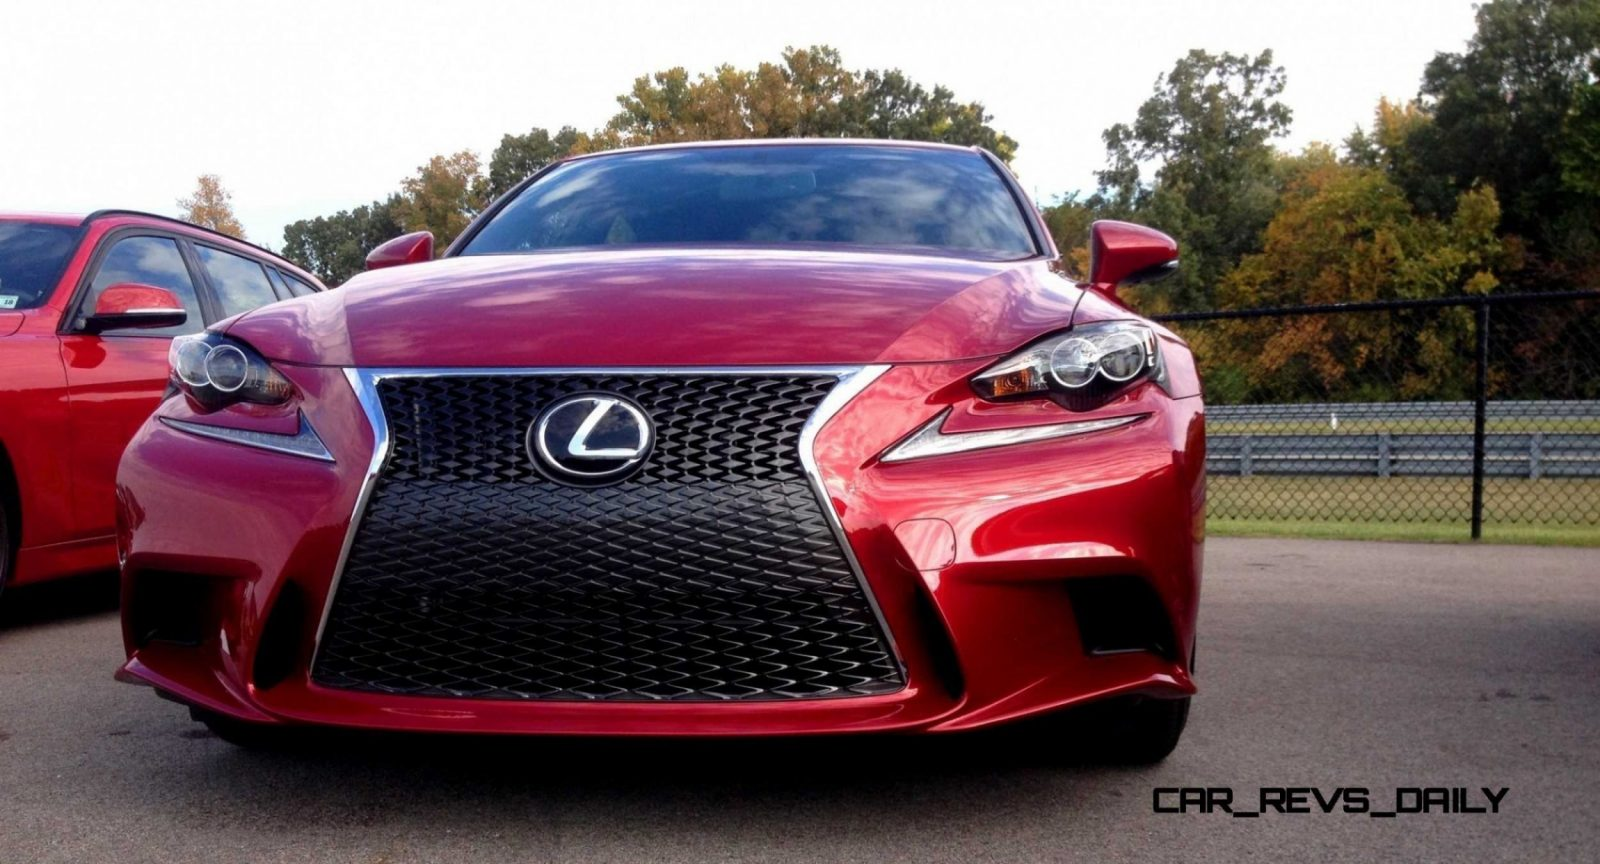 2014 Lexus IS350 AWD F Sport - First-Drive Photos3